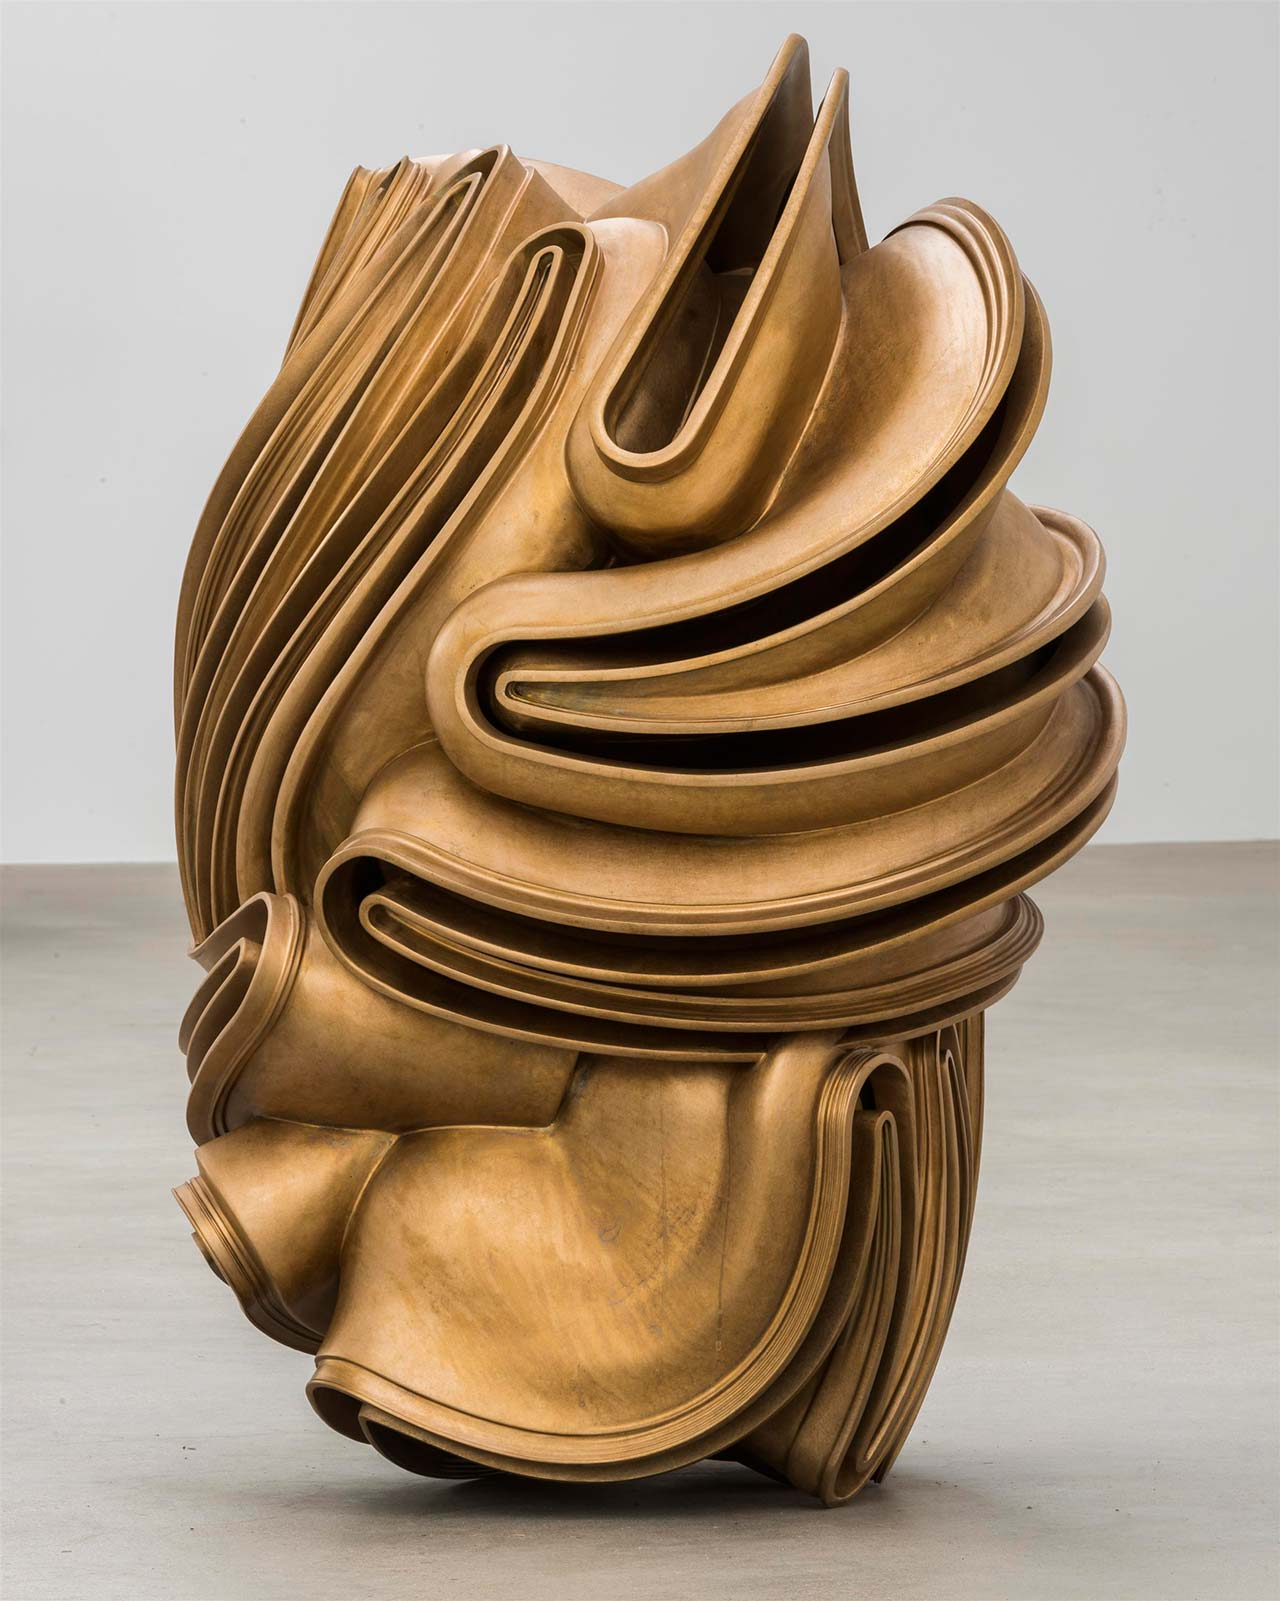 Tony Cragg, Foreign Body, 2015. Bronze, 120 x 106 x 76cm. Photo by Charles Duprat. © VG Bild-Kunst Bonn 2016.